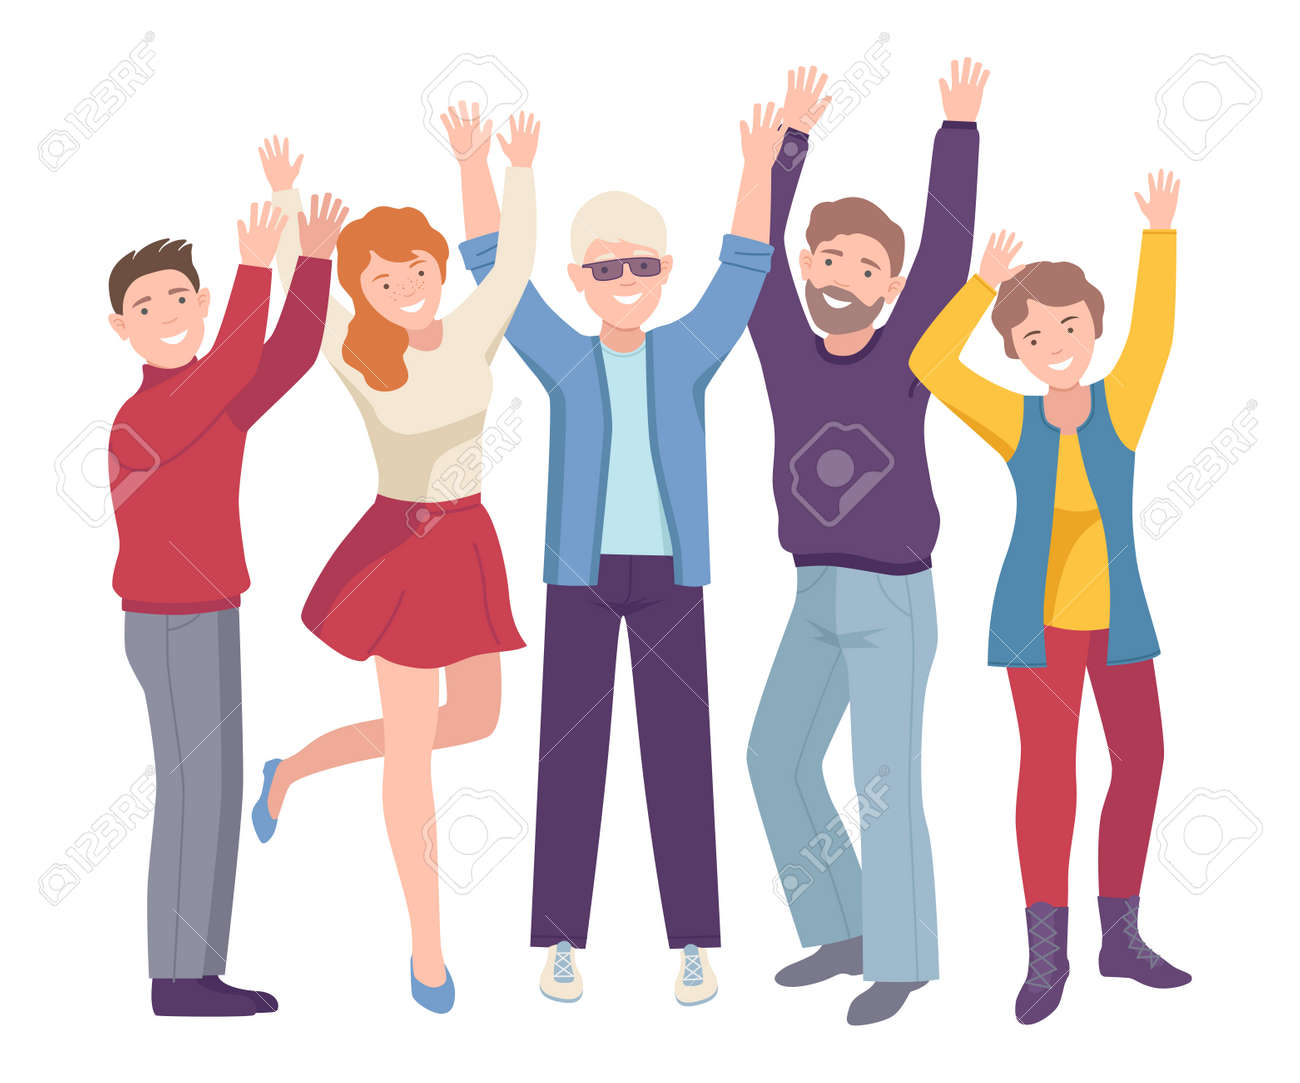 Group of Joyful People Characters Up with Hands Cheering About Something Vector Illustration - 165428495